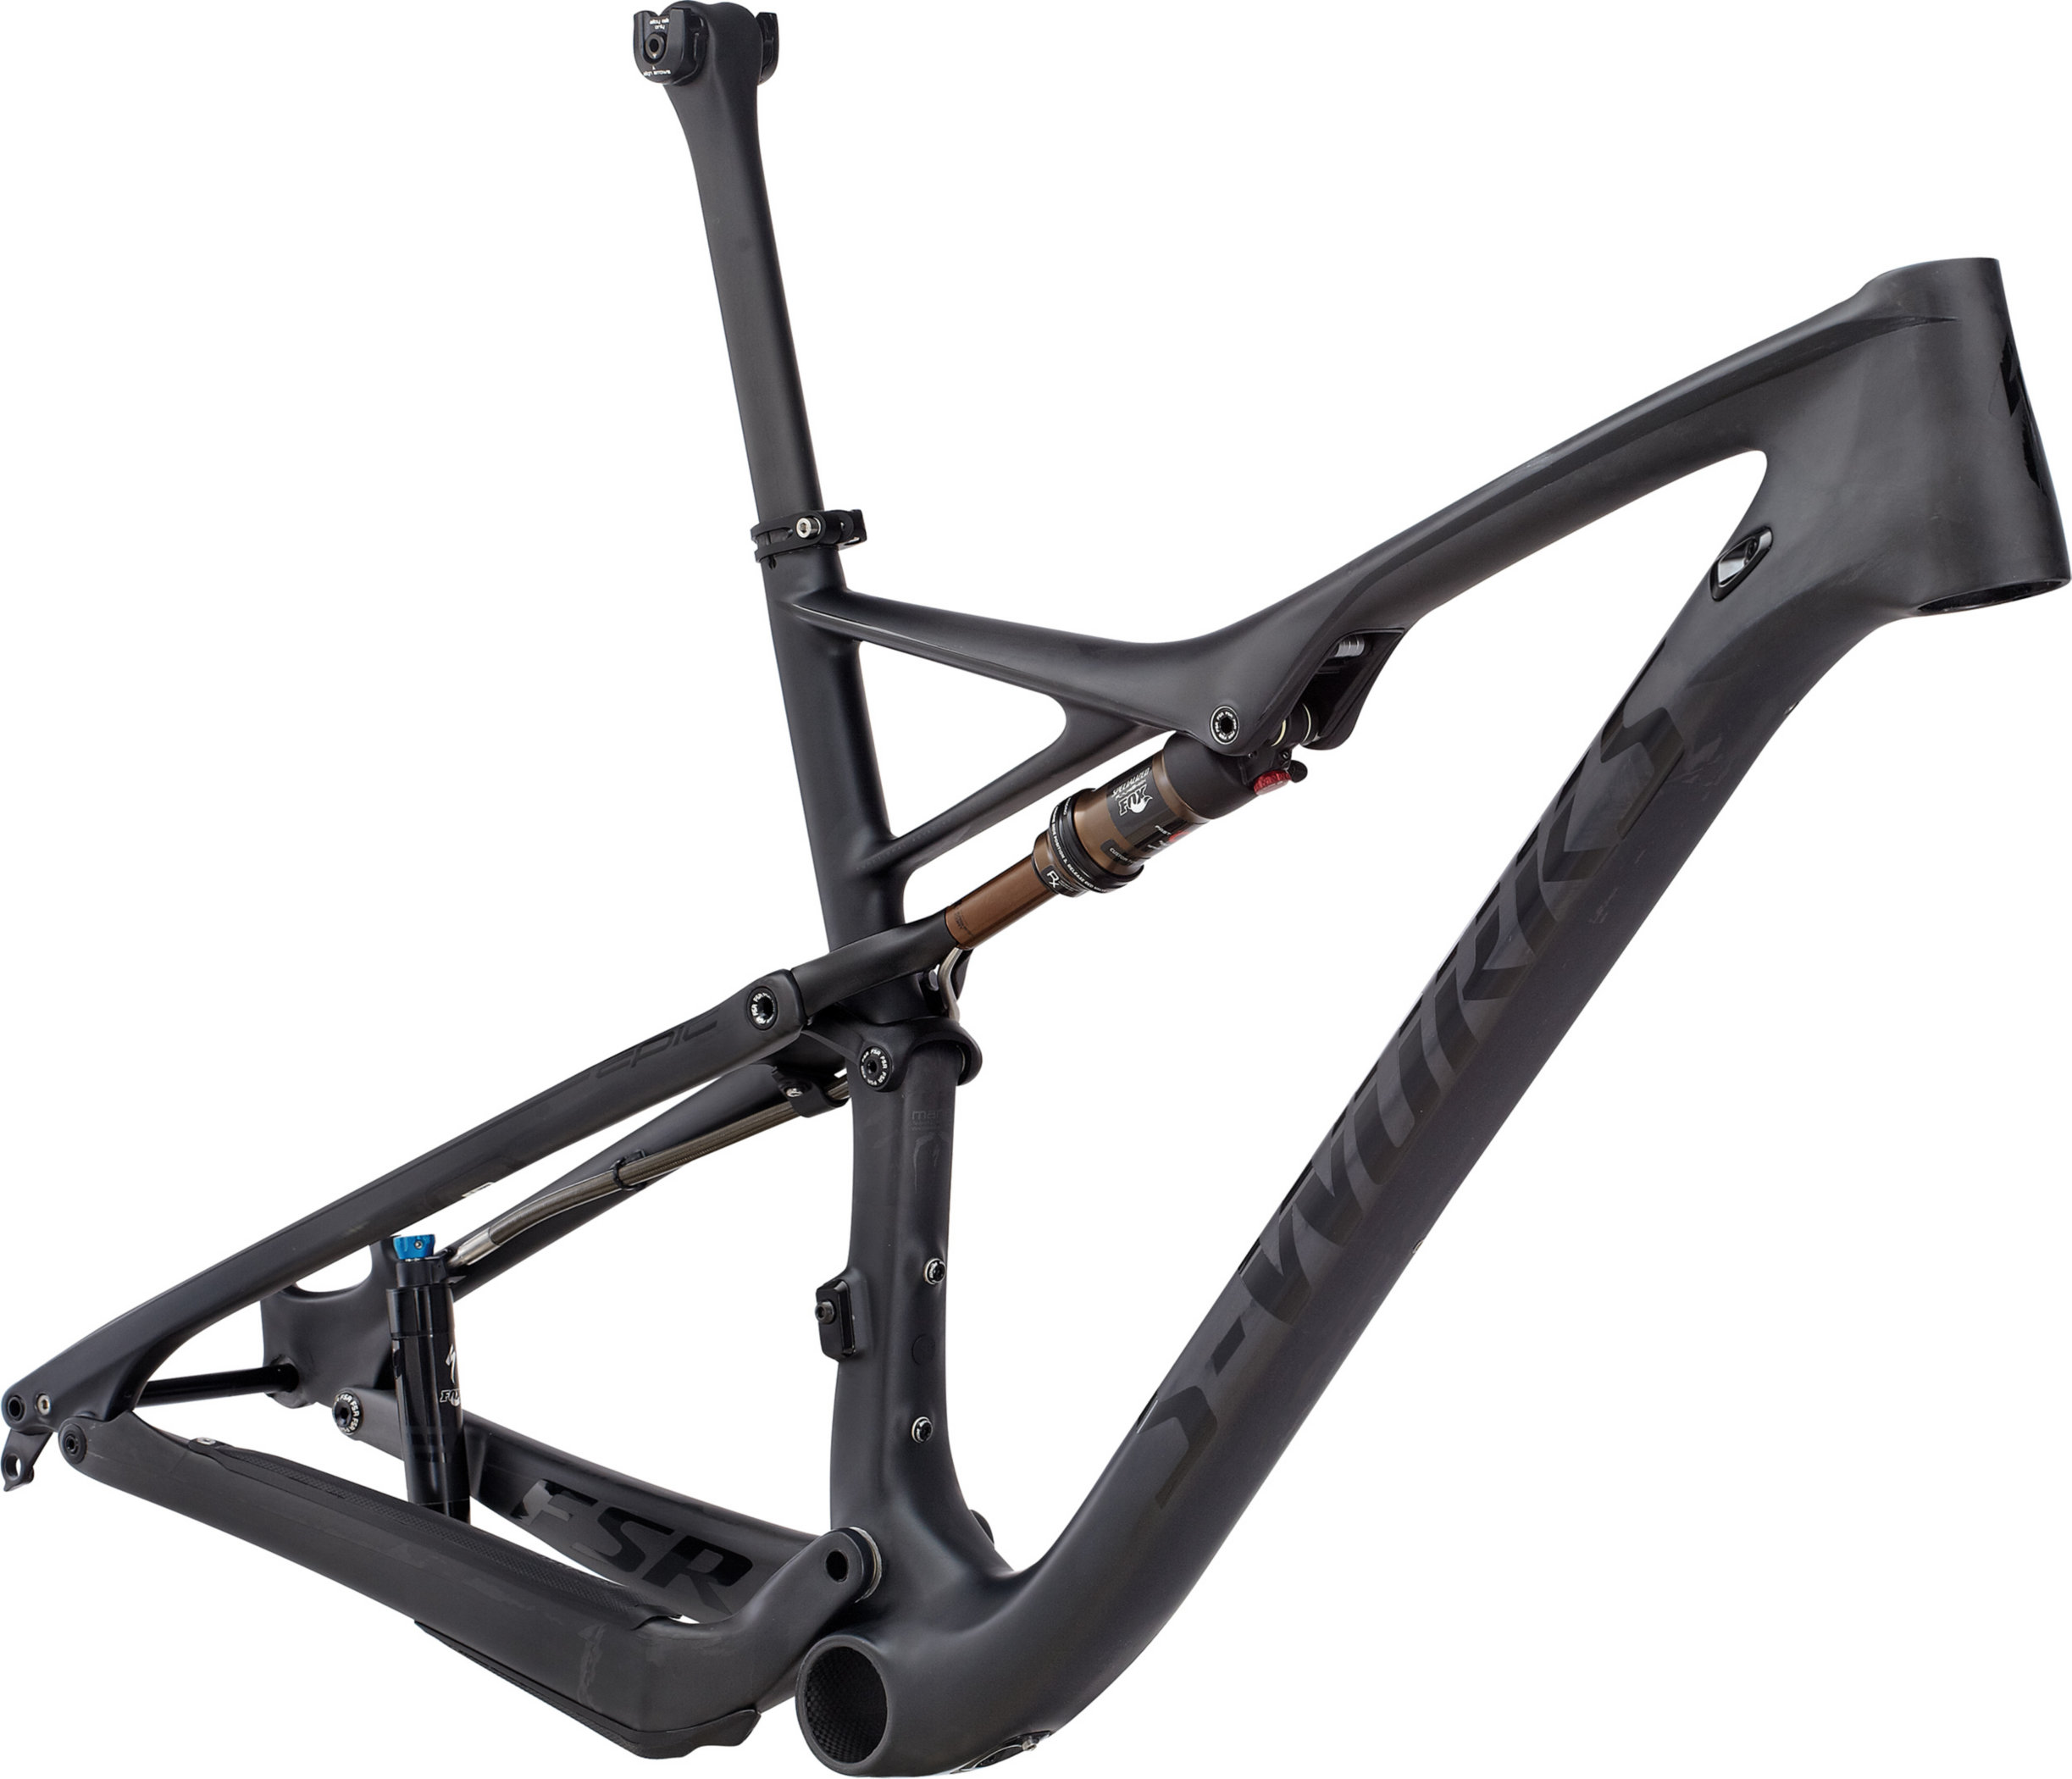 SPECIALIZED SW EPIC FSR CARBON 29 FRM CARB XL - SPECIALIZED SW EPIC FSR CARBON 29 FRM CARB XL